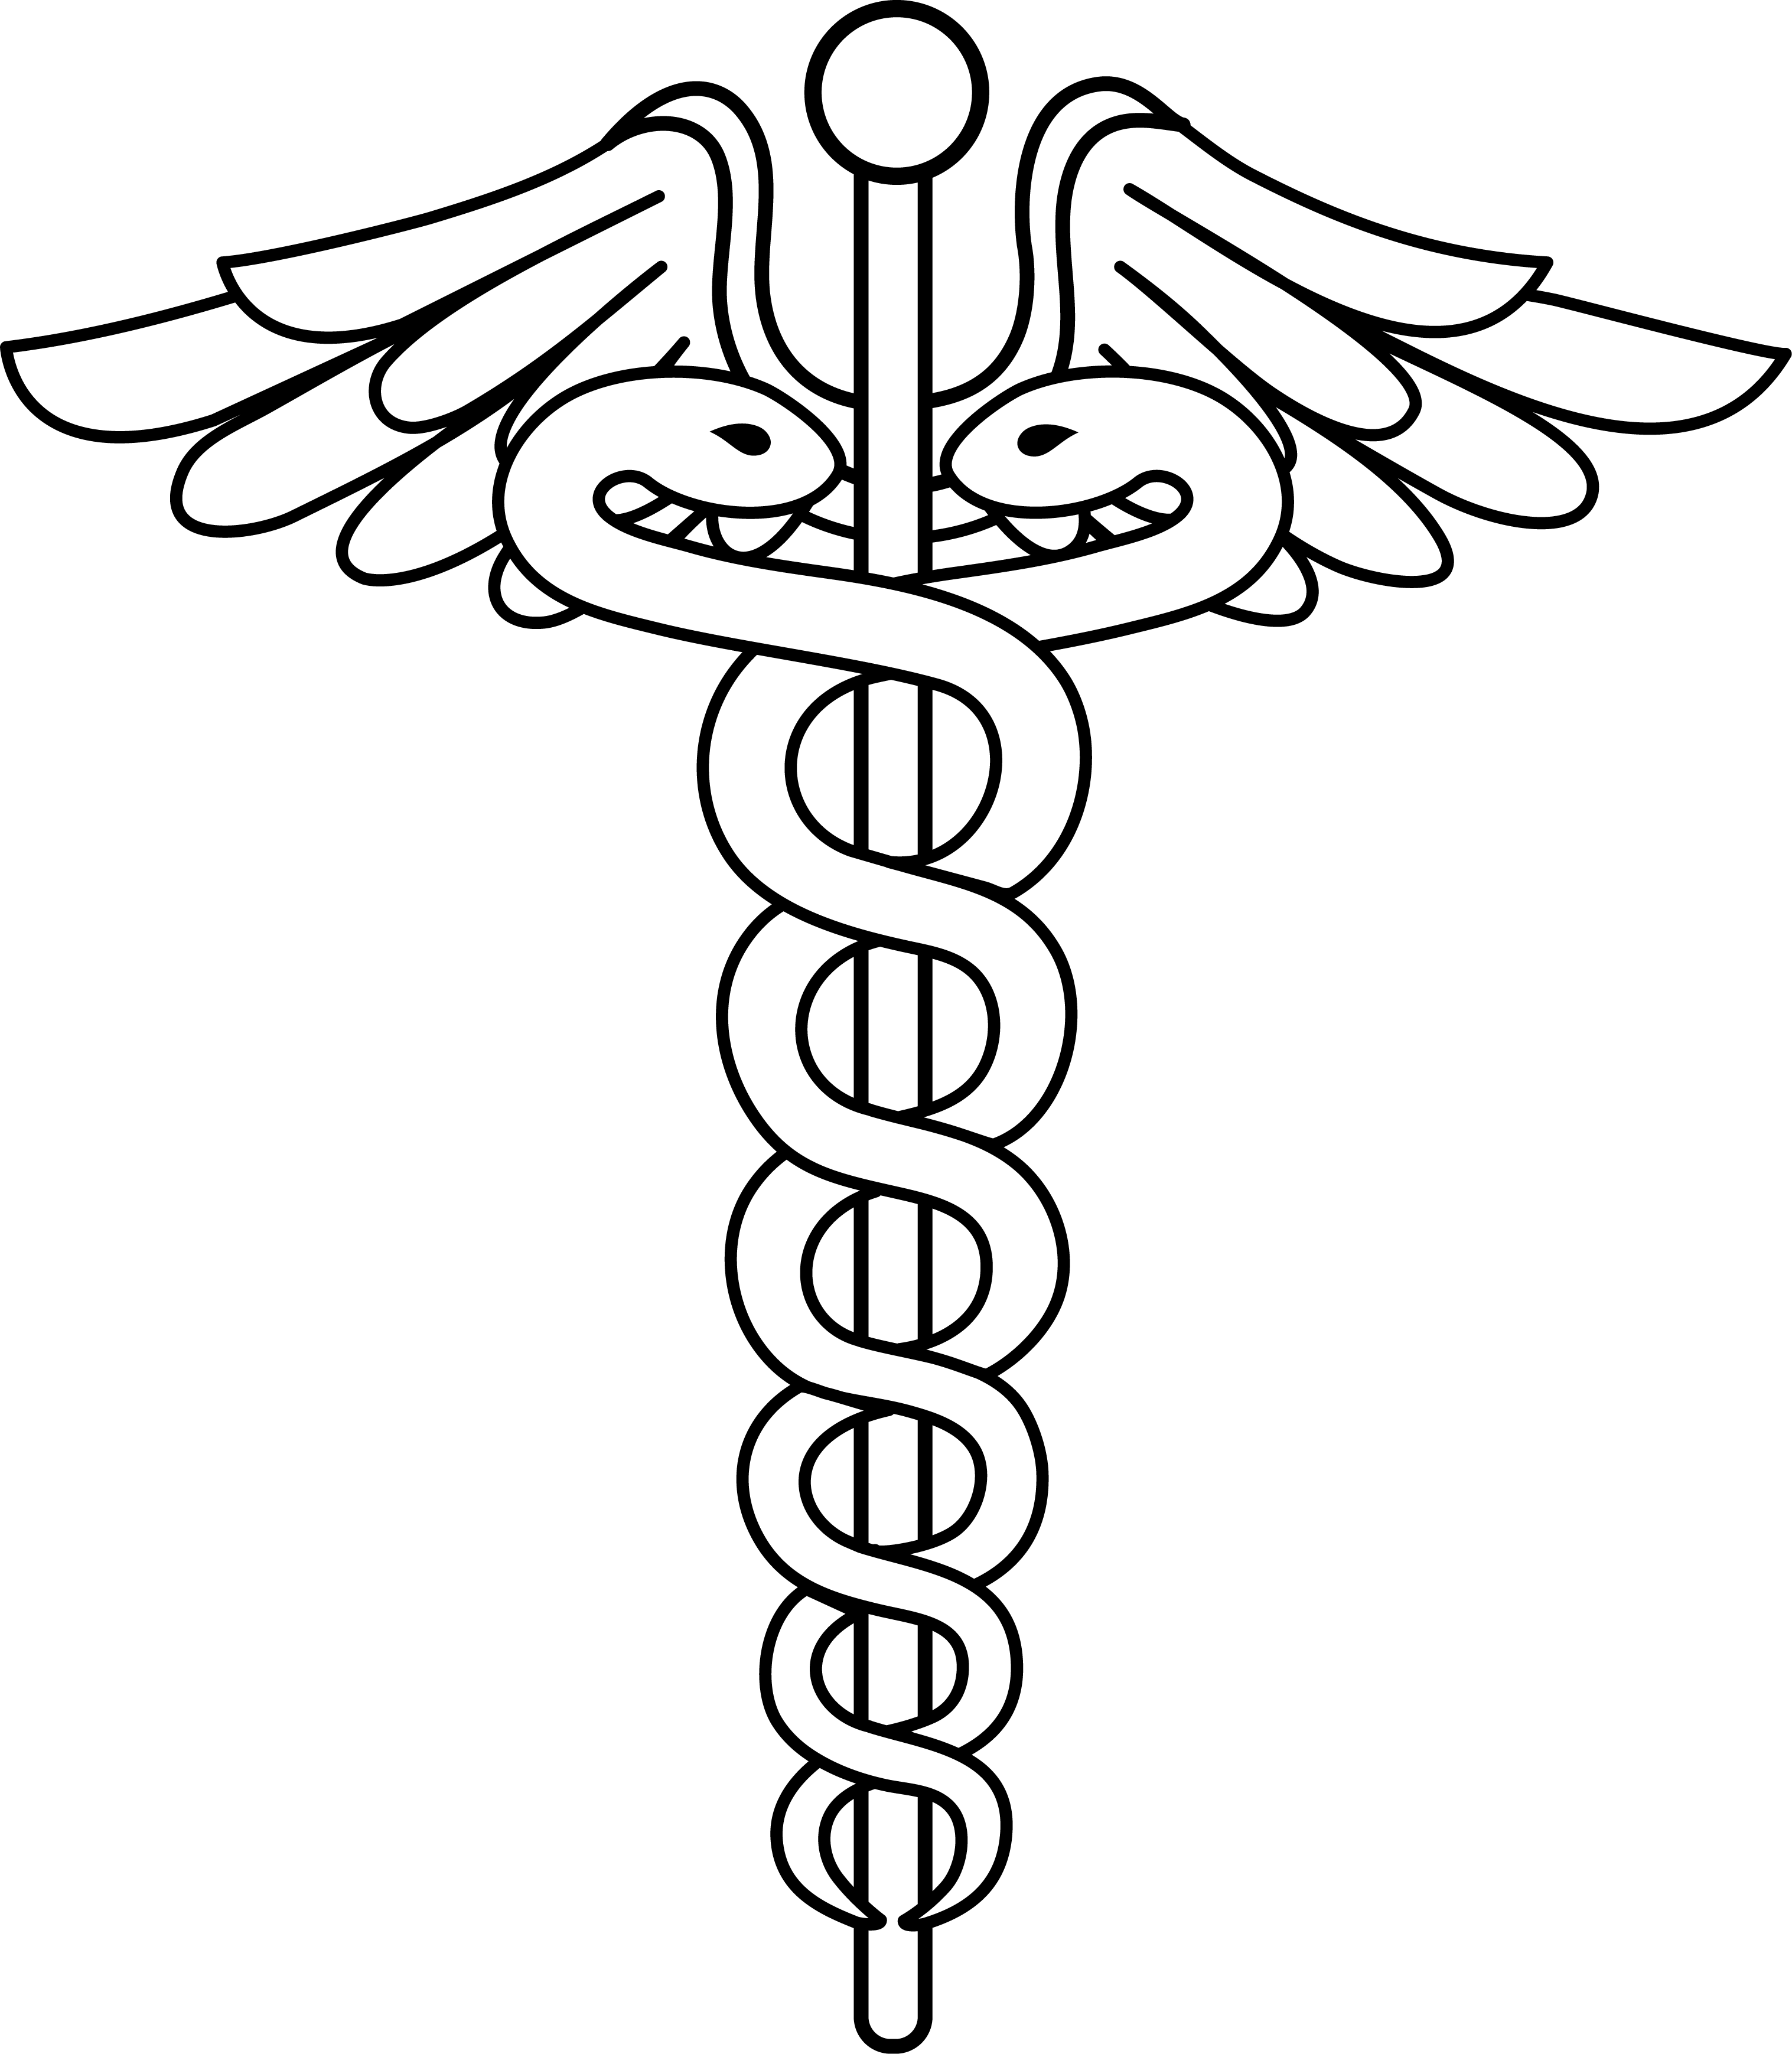 Caduceus Medical Logo Lineart.